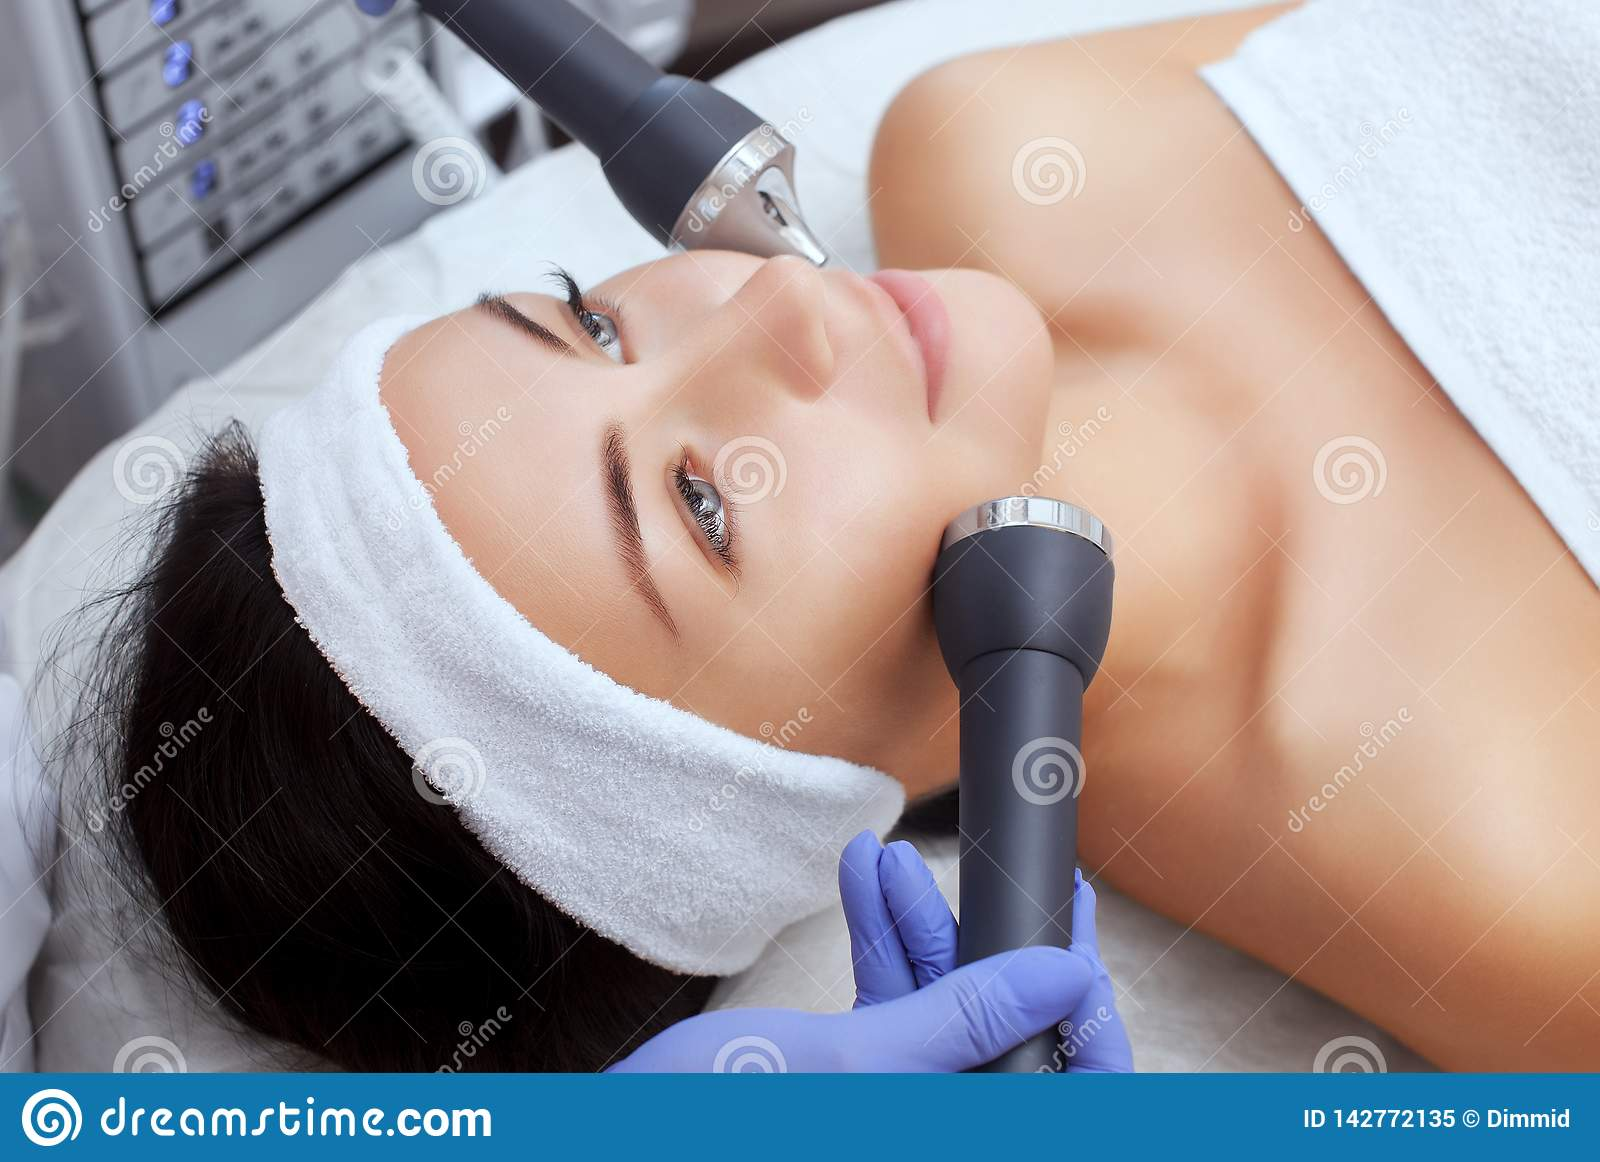 The cosmetologist makes the procedure an ultrasonic cleaning of the facial skin of a beautiful, young woman in a beauty salon